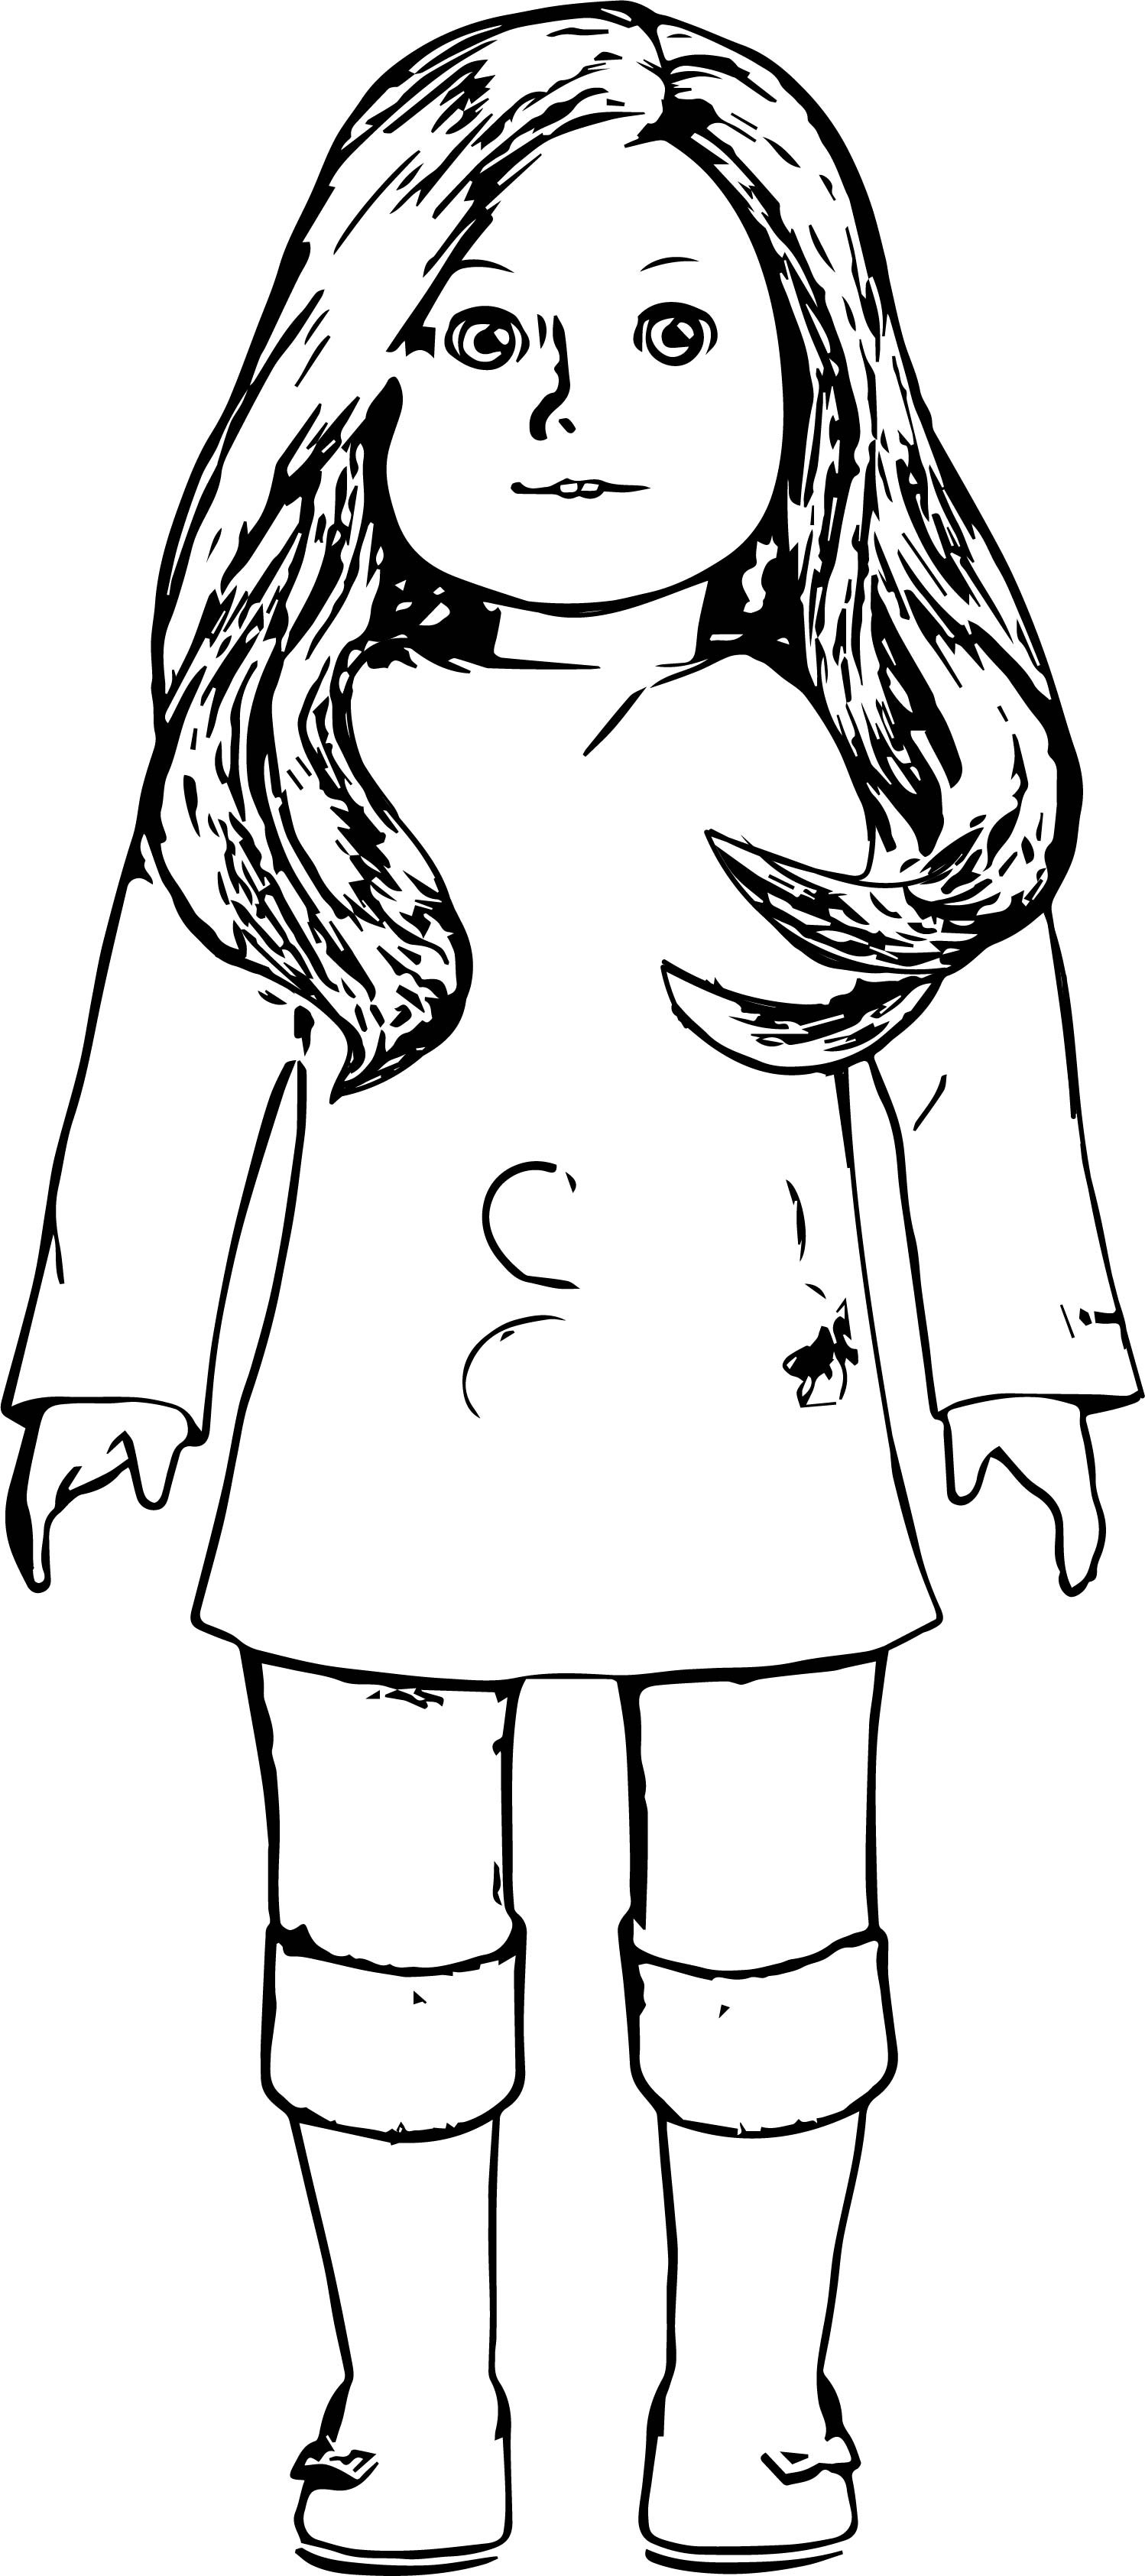 American Girl Coloring Pages Lea Coloring Free Printable American Girl Coloring Pages For Kids